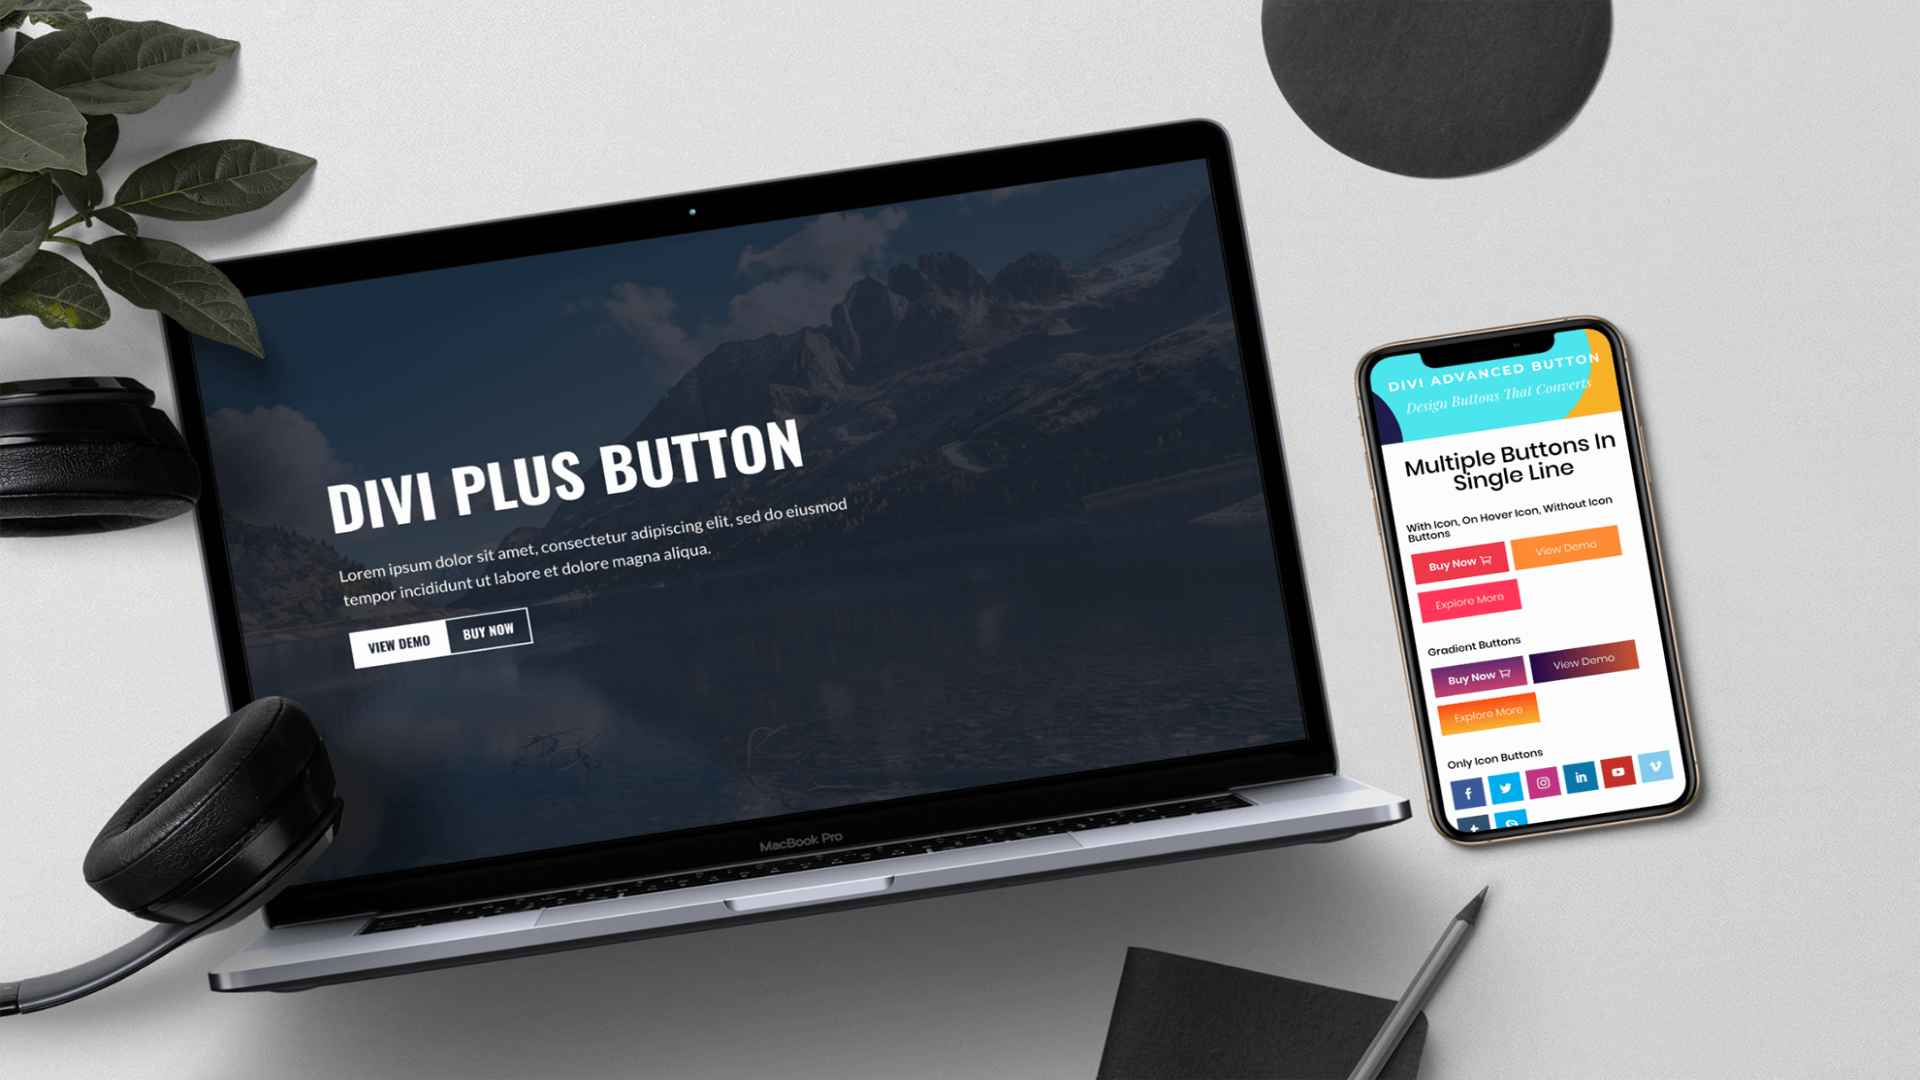 divi plus advanced button